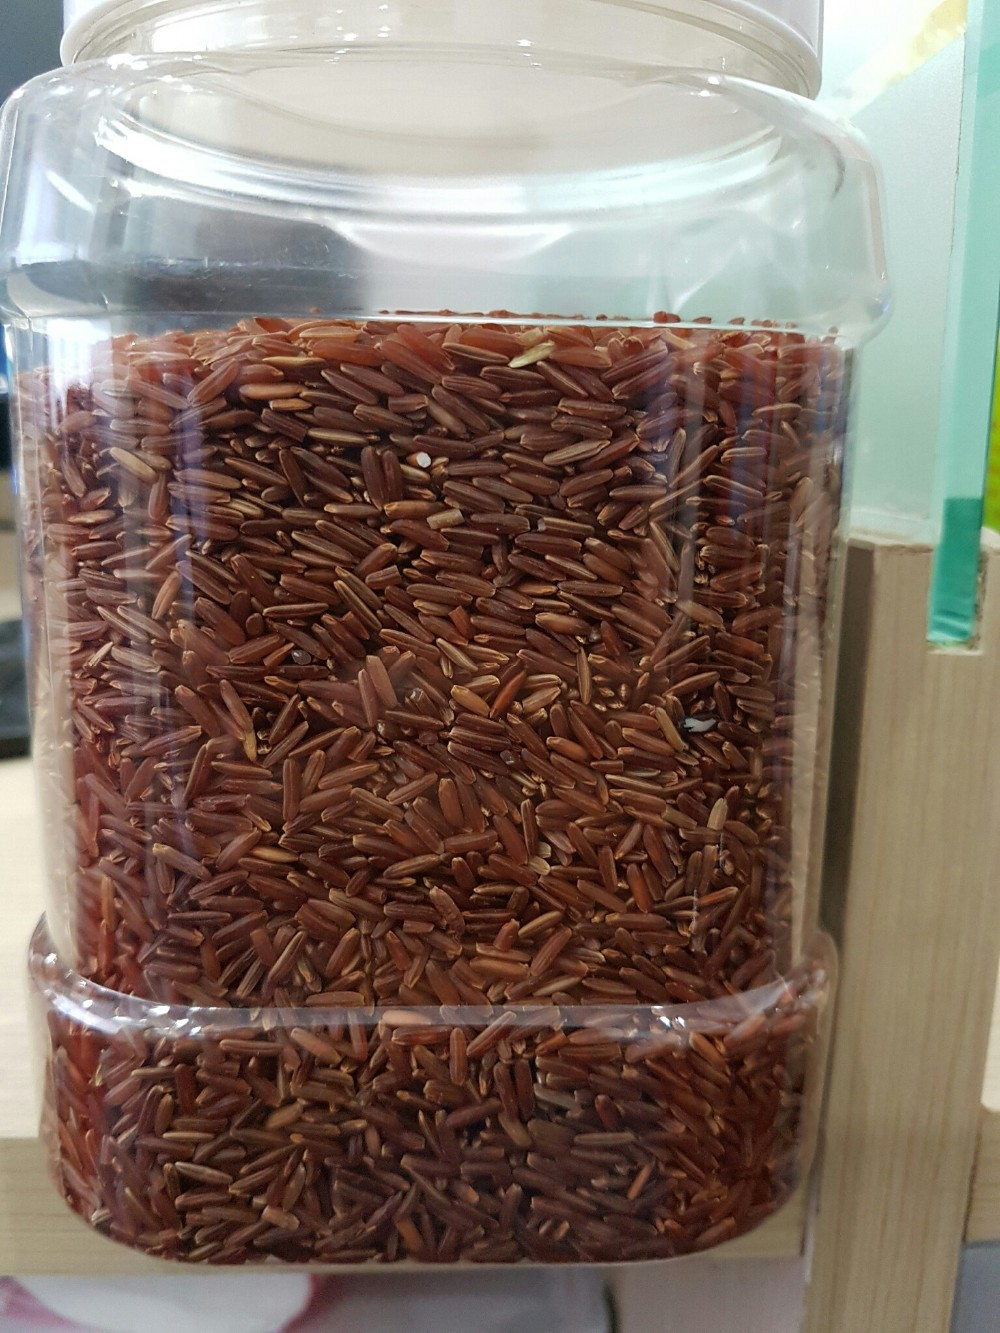 RED RICE, DRAGON BLOOD RICE, HIGH QUALITY PRODUCTS